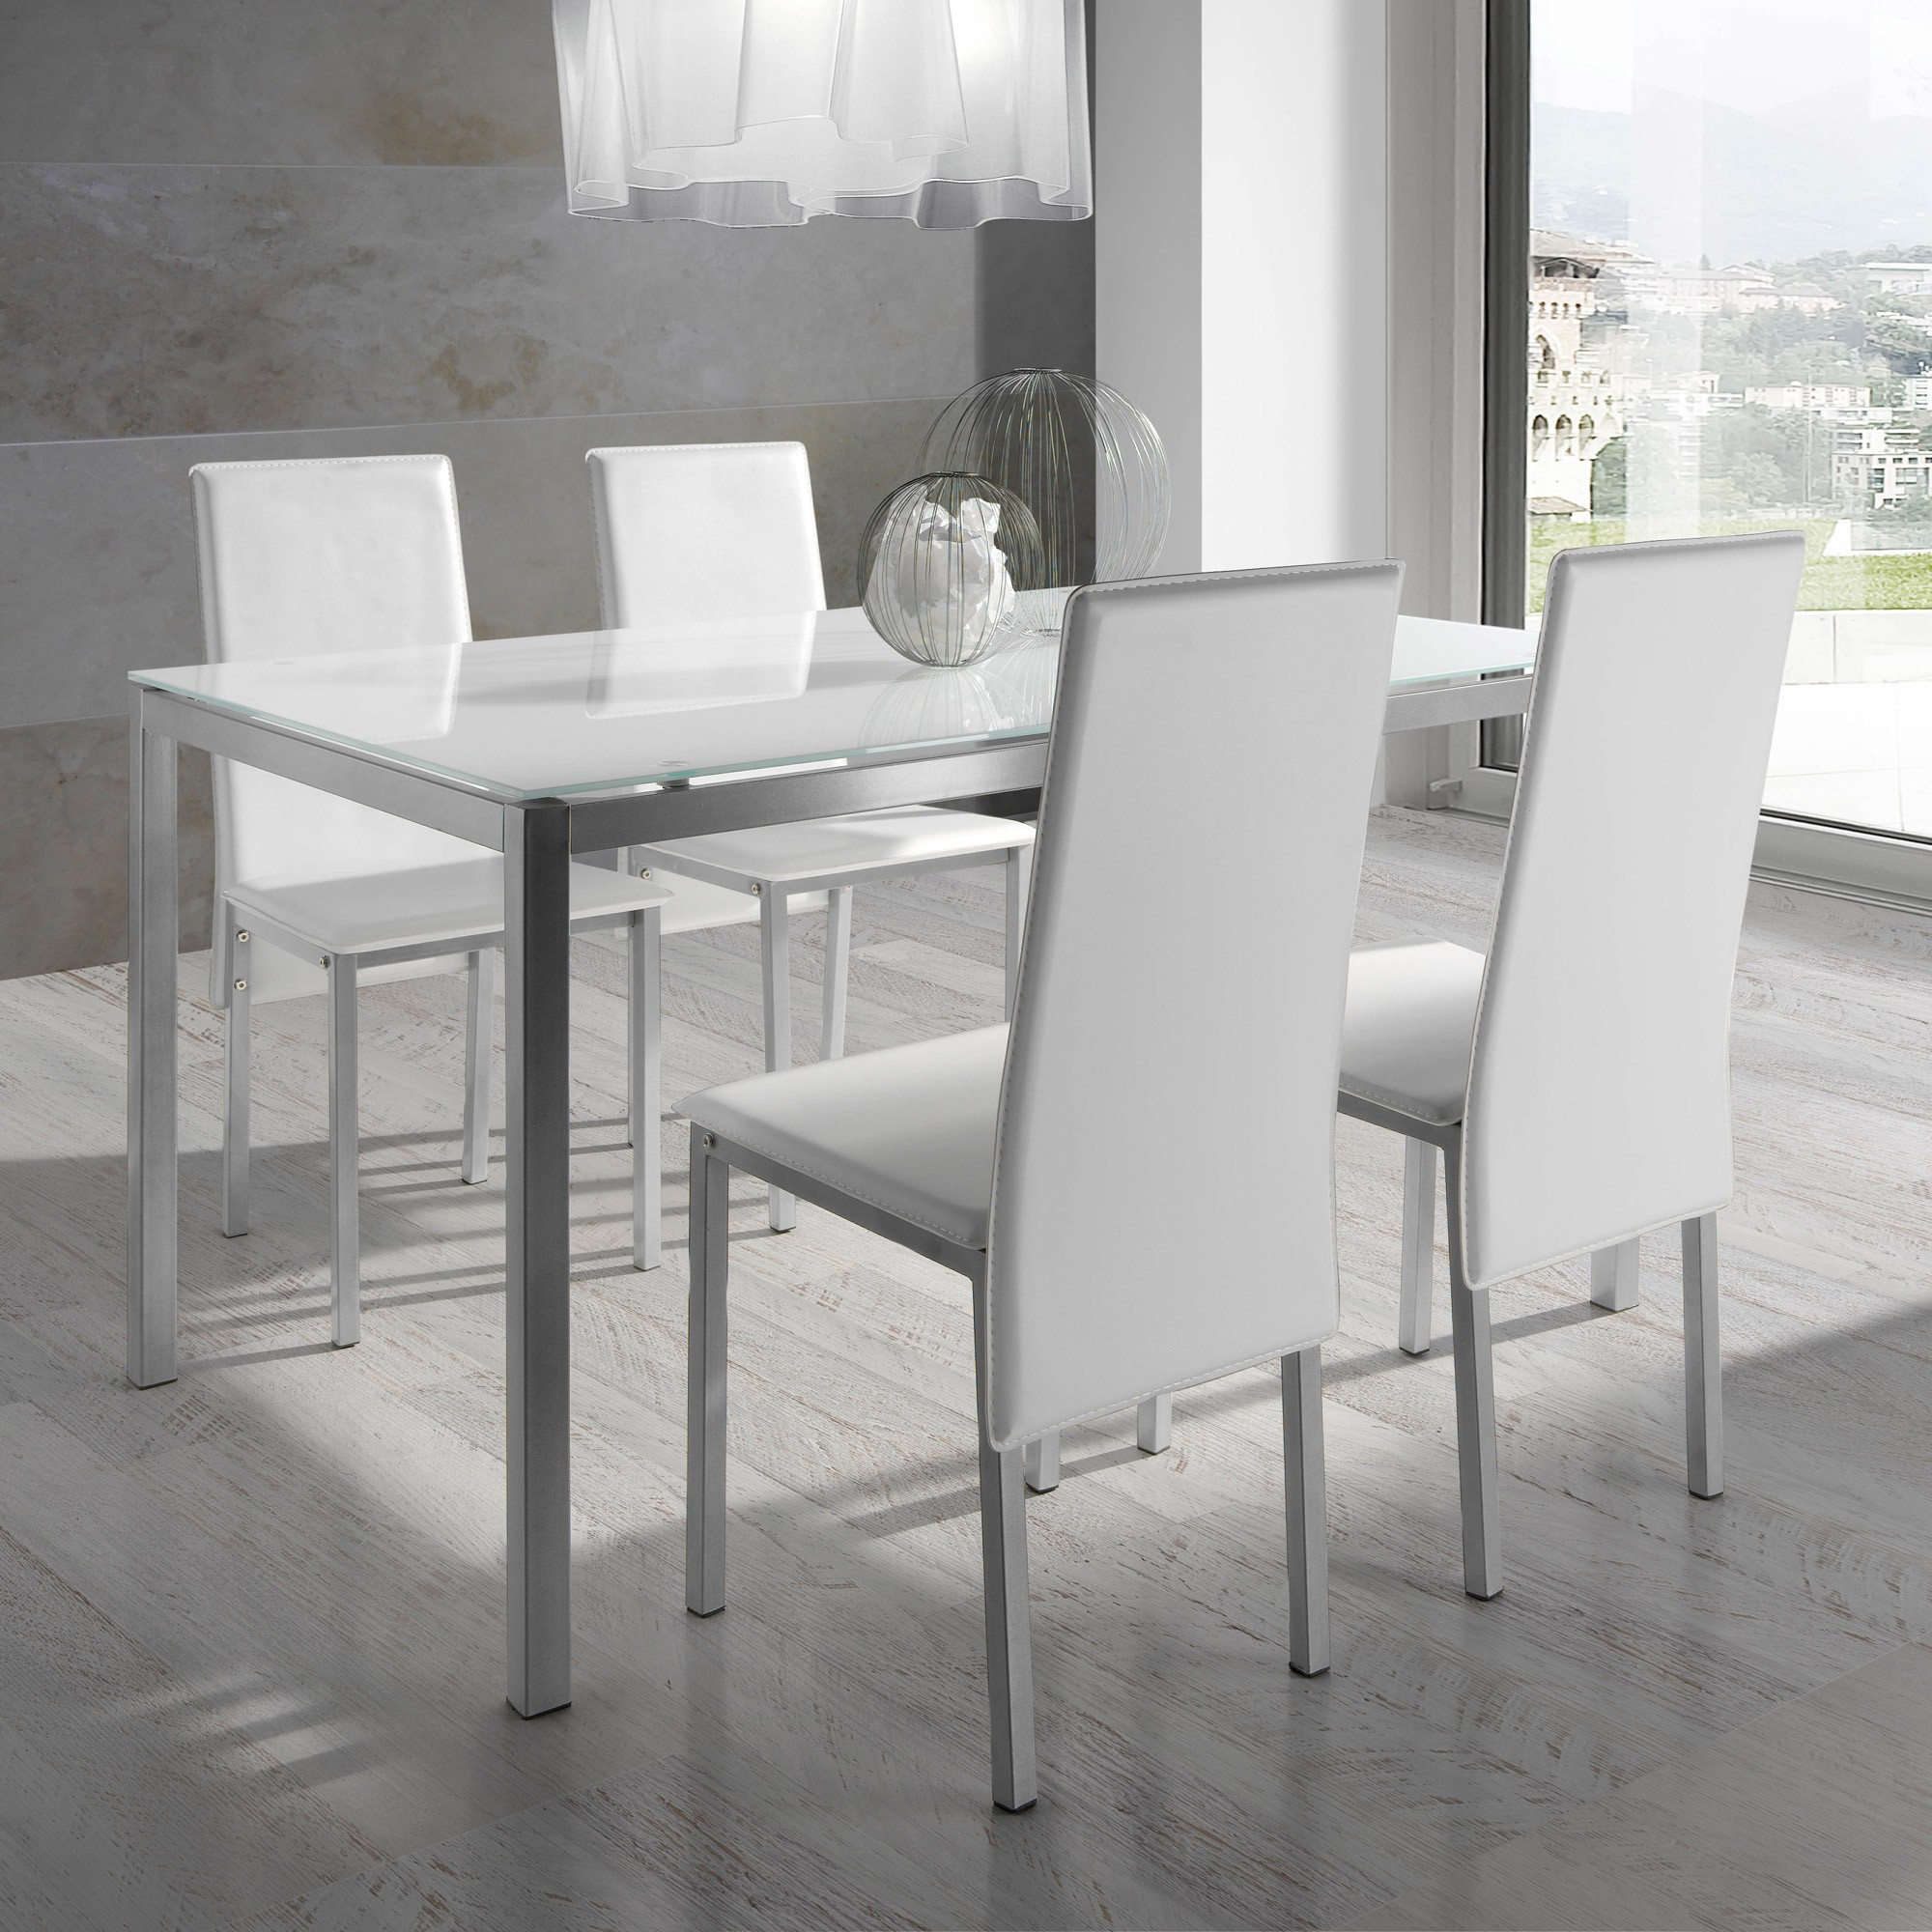 Ensemble table et chaise salle a manger but chaise Ensemble table salle a manger et chaise